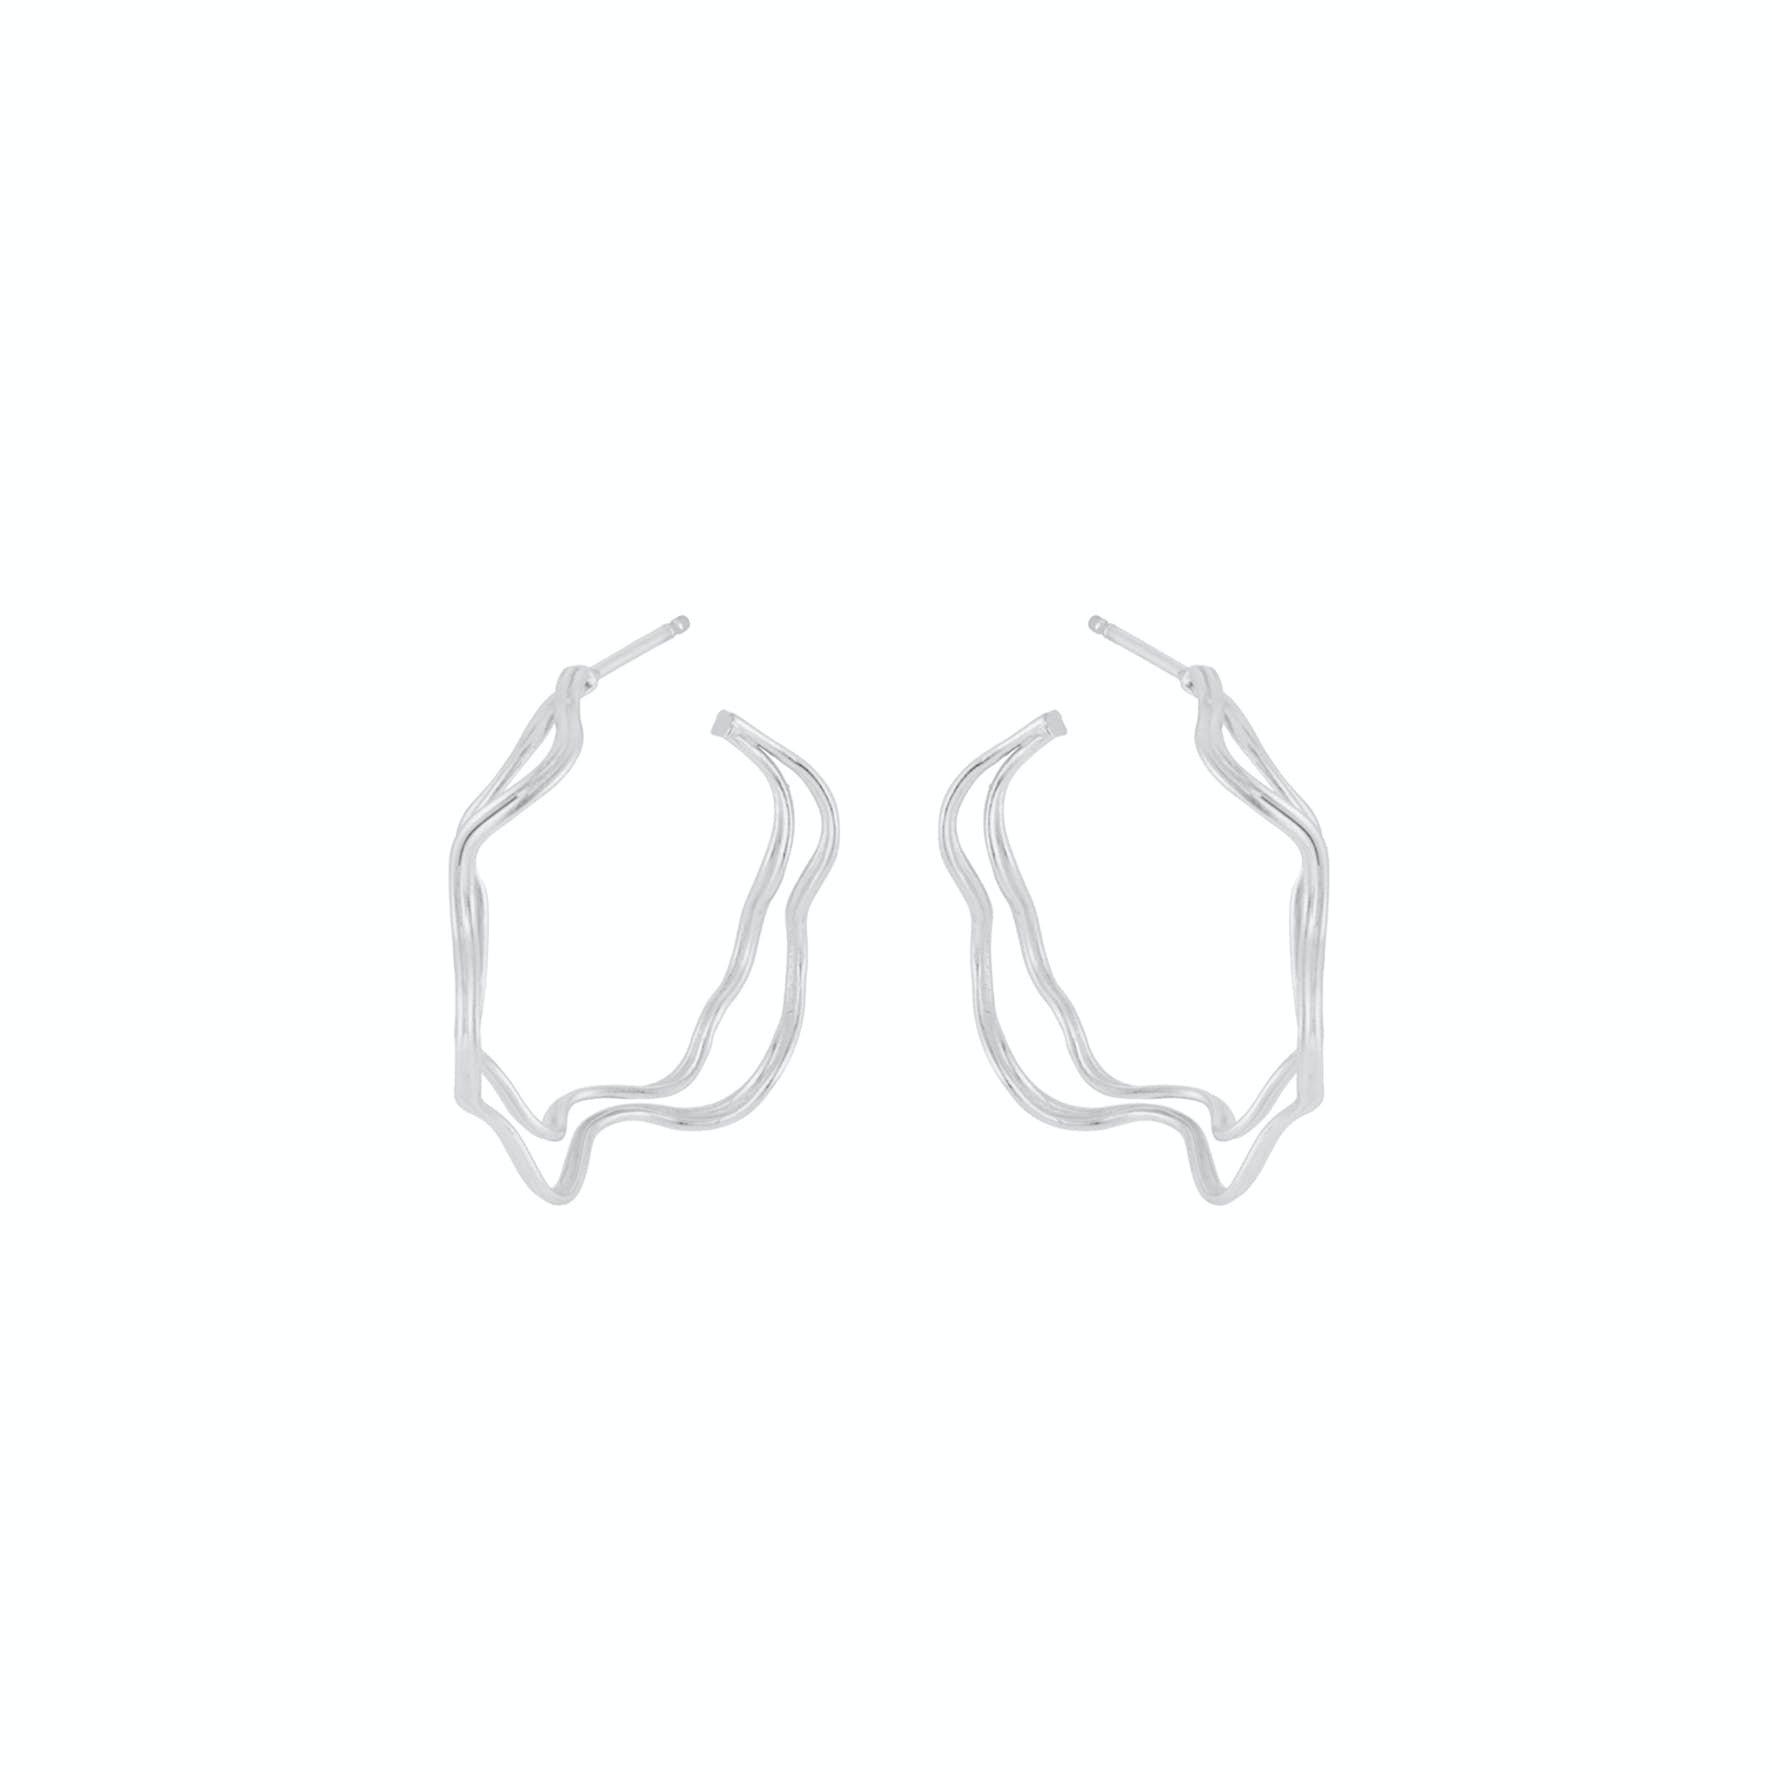 Double Wave Hoops from Pernille Corydon in Silver Sterling 925